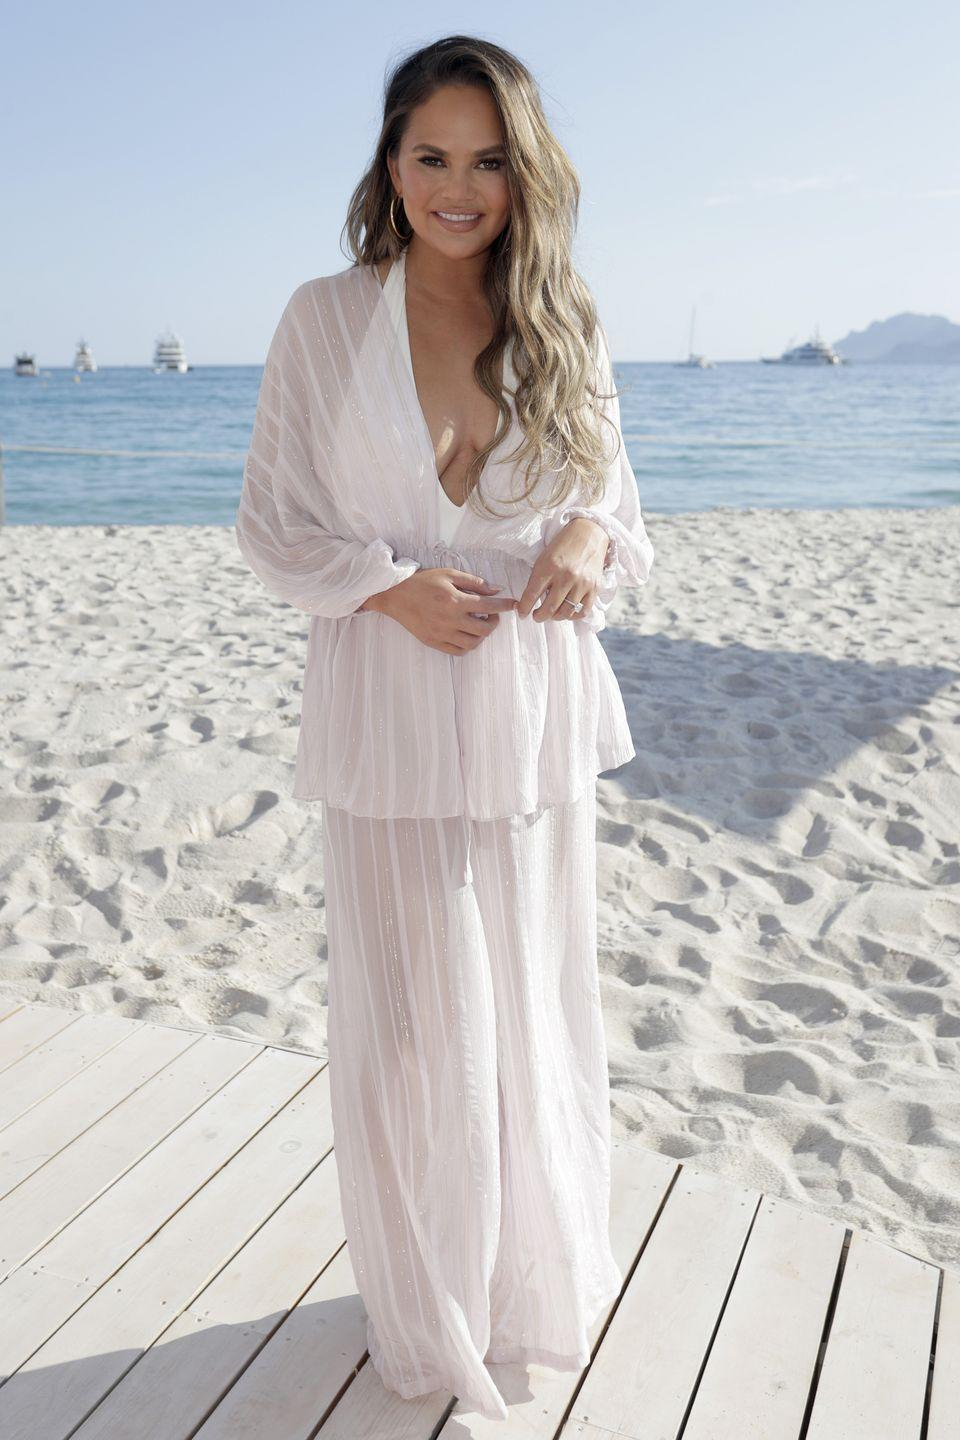 <p>Who: Chrissy Teigen </p><p>When: June 18, 2019</p><p>Wearing: Adriana Degreas</p><p>Why: This just might be the perfect beach look. Chrissy Teigen attended #TwitterBeach in Cannes, France in a monochromatic look we plan to copy on our next vacation. </p>